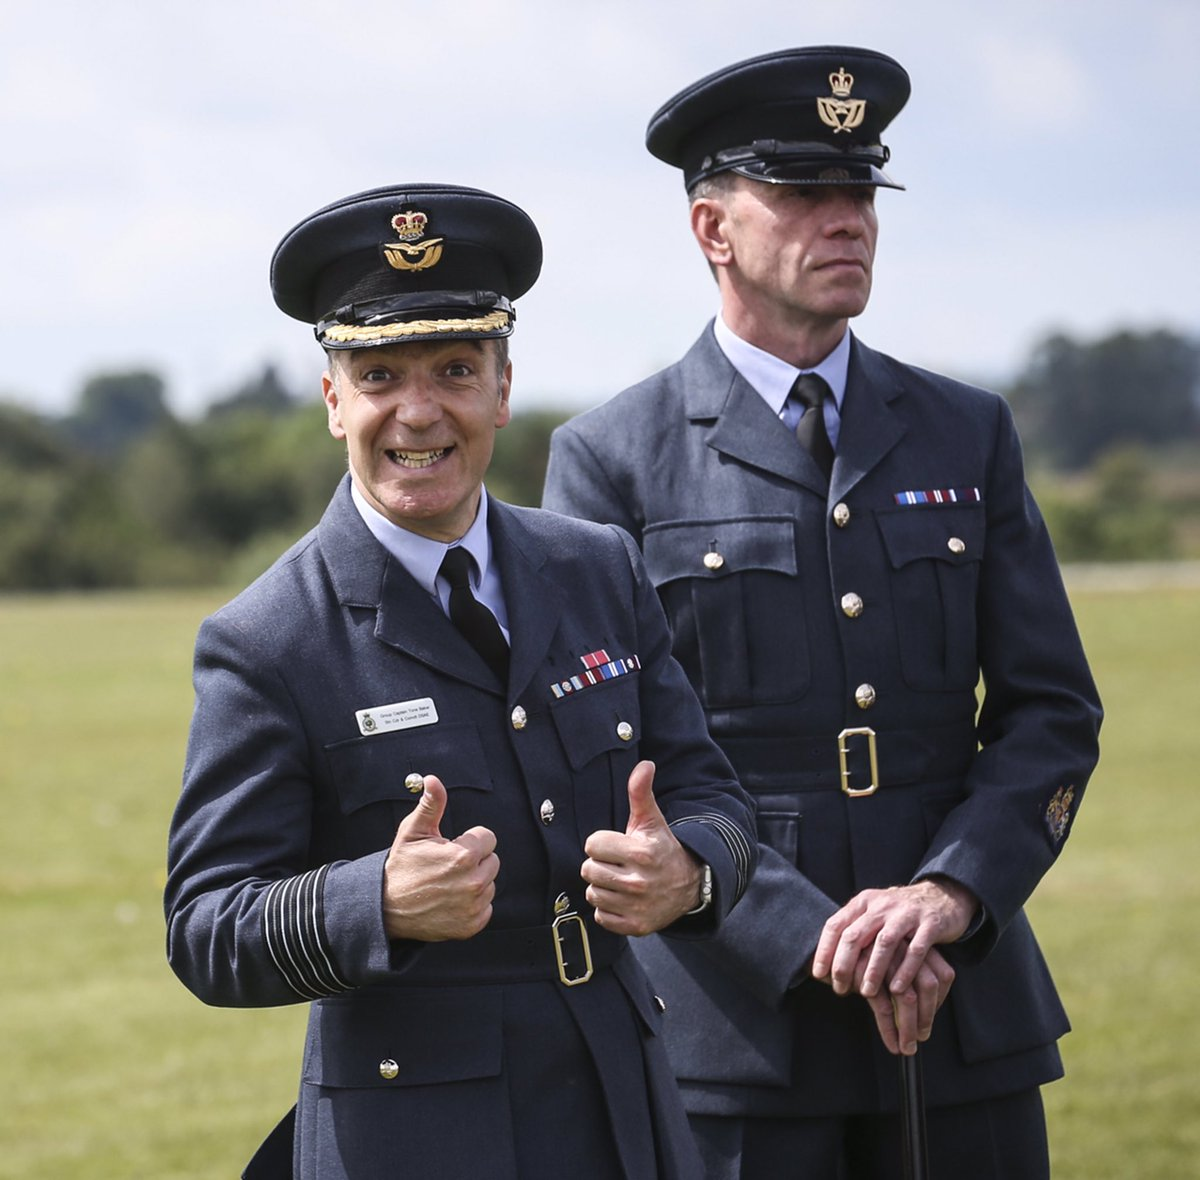 When your Station Commander and your Station Warrant Officer are side by side wearing these expressions you know that there is balance and harmony in the world. Everything is as it should be. @RoyalAirForce @StnCdrCosford